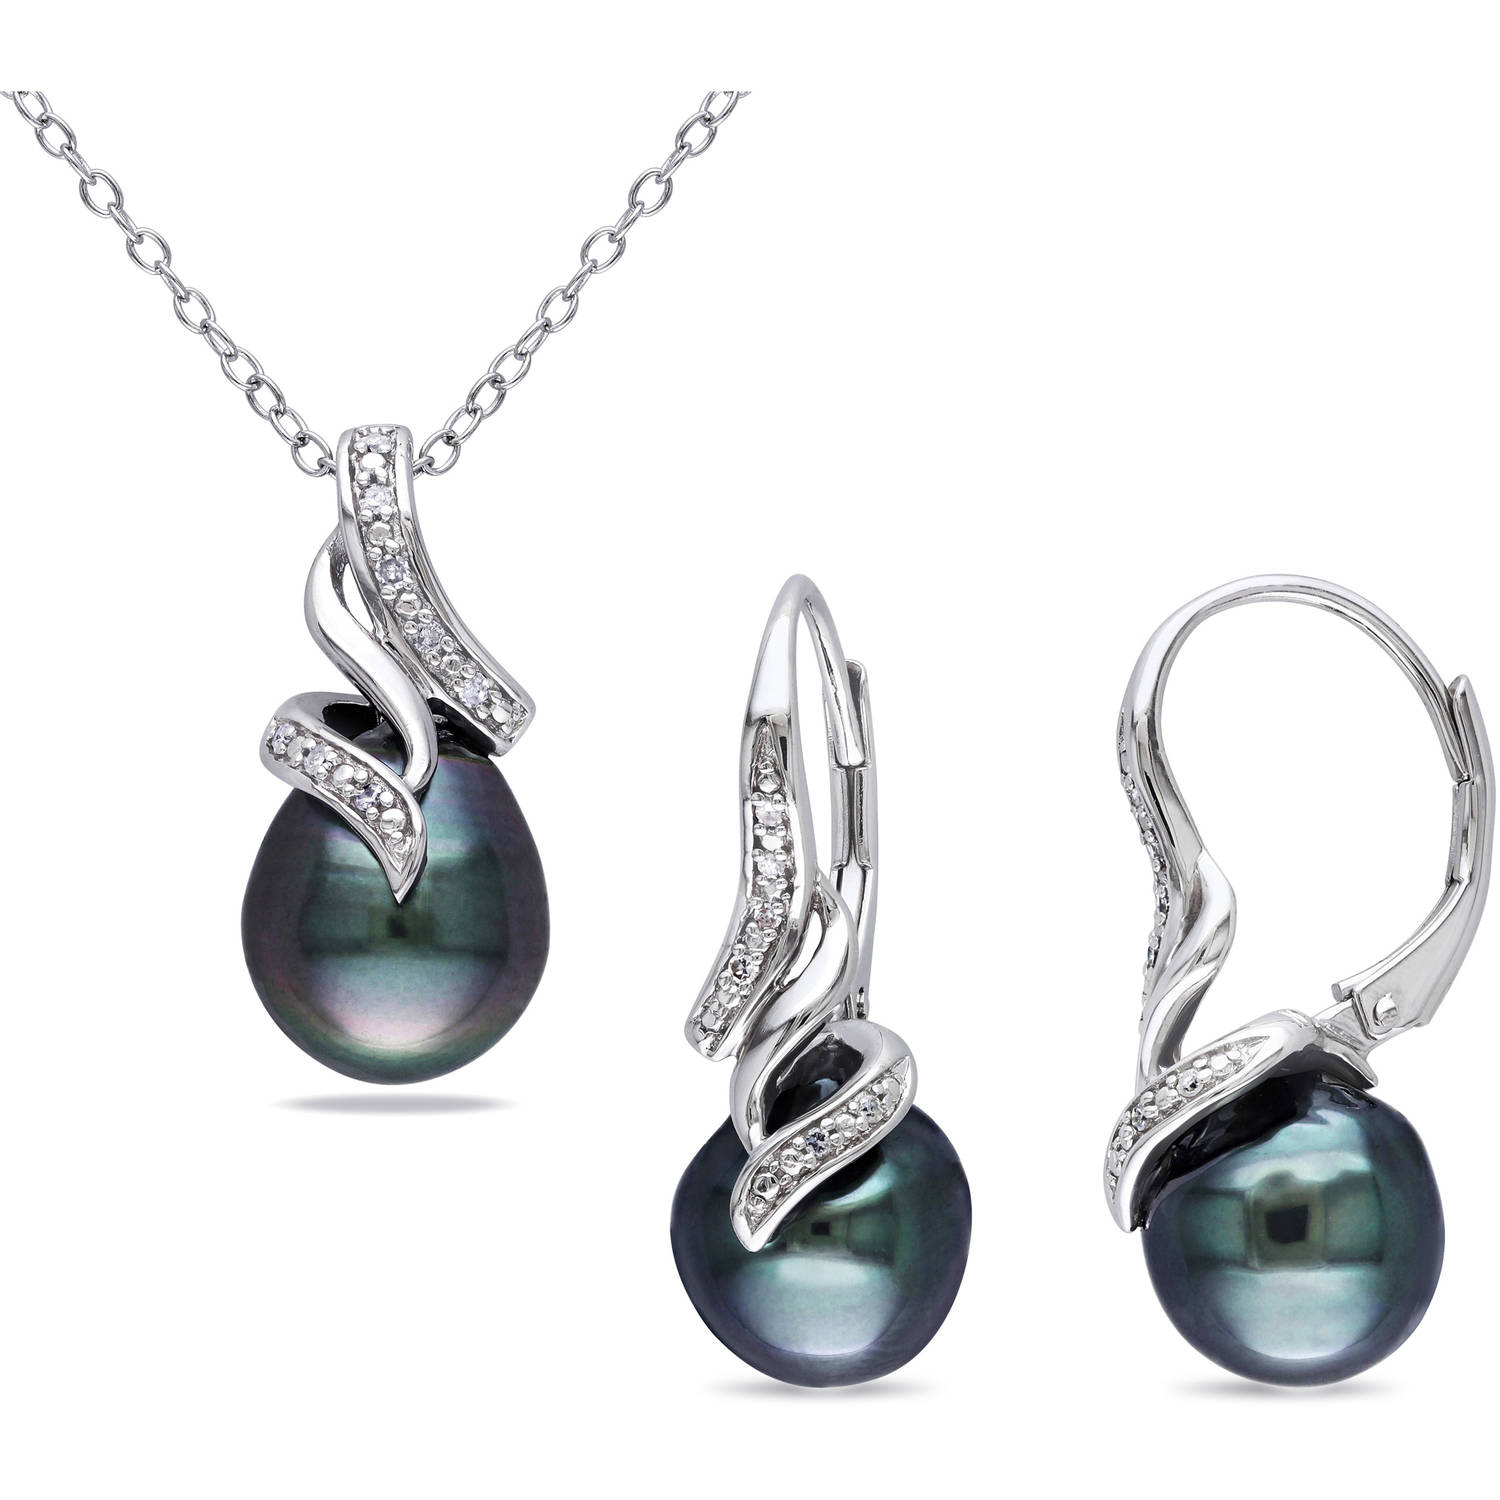 Asteria 9-9.5mm Black Drop Tahitian Pearl with Diamond-Accent Sterling Silver Set of Pendant and Leverback Earrings,... by Generic